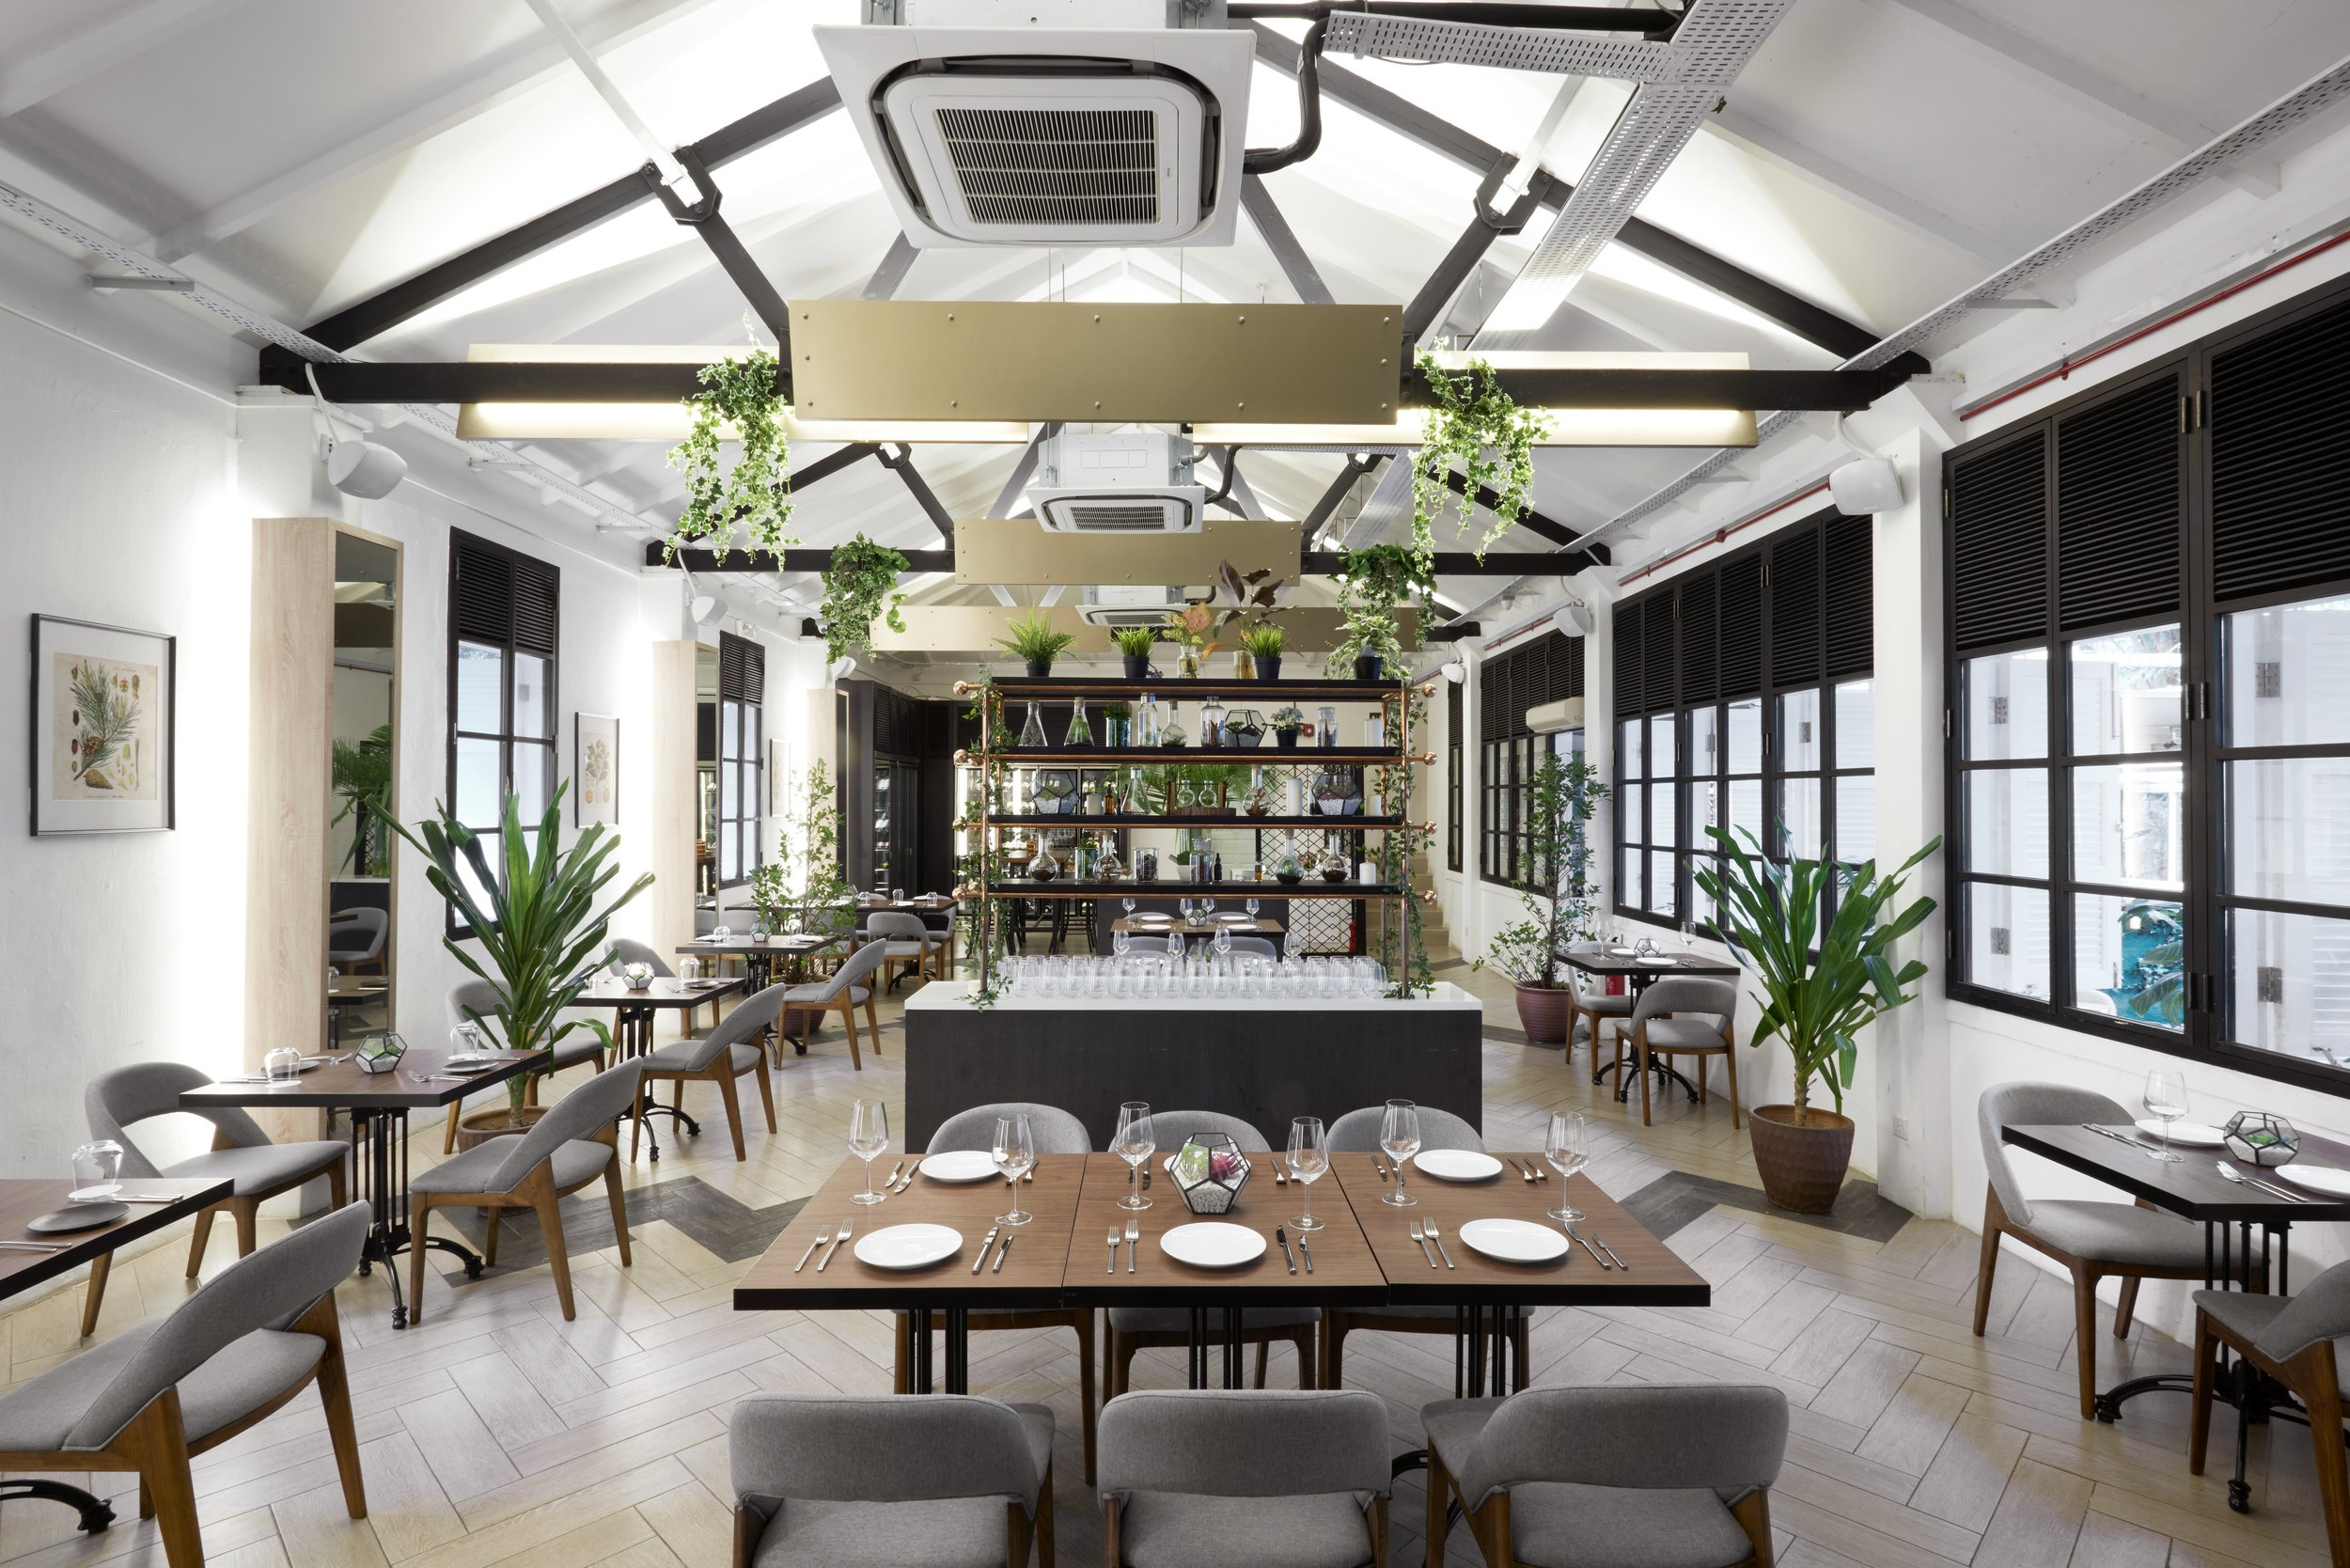 Botanico-indoor-dining-3_shrinked.jpg